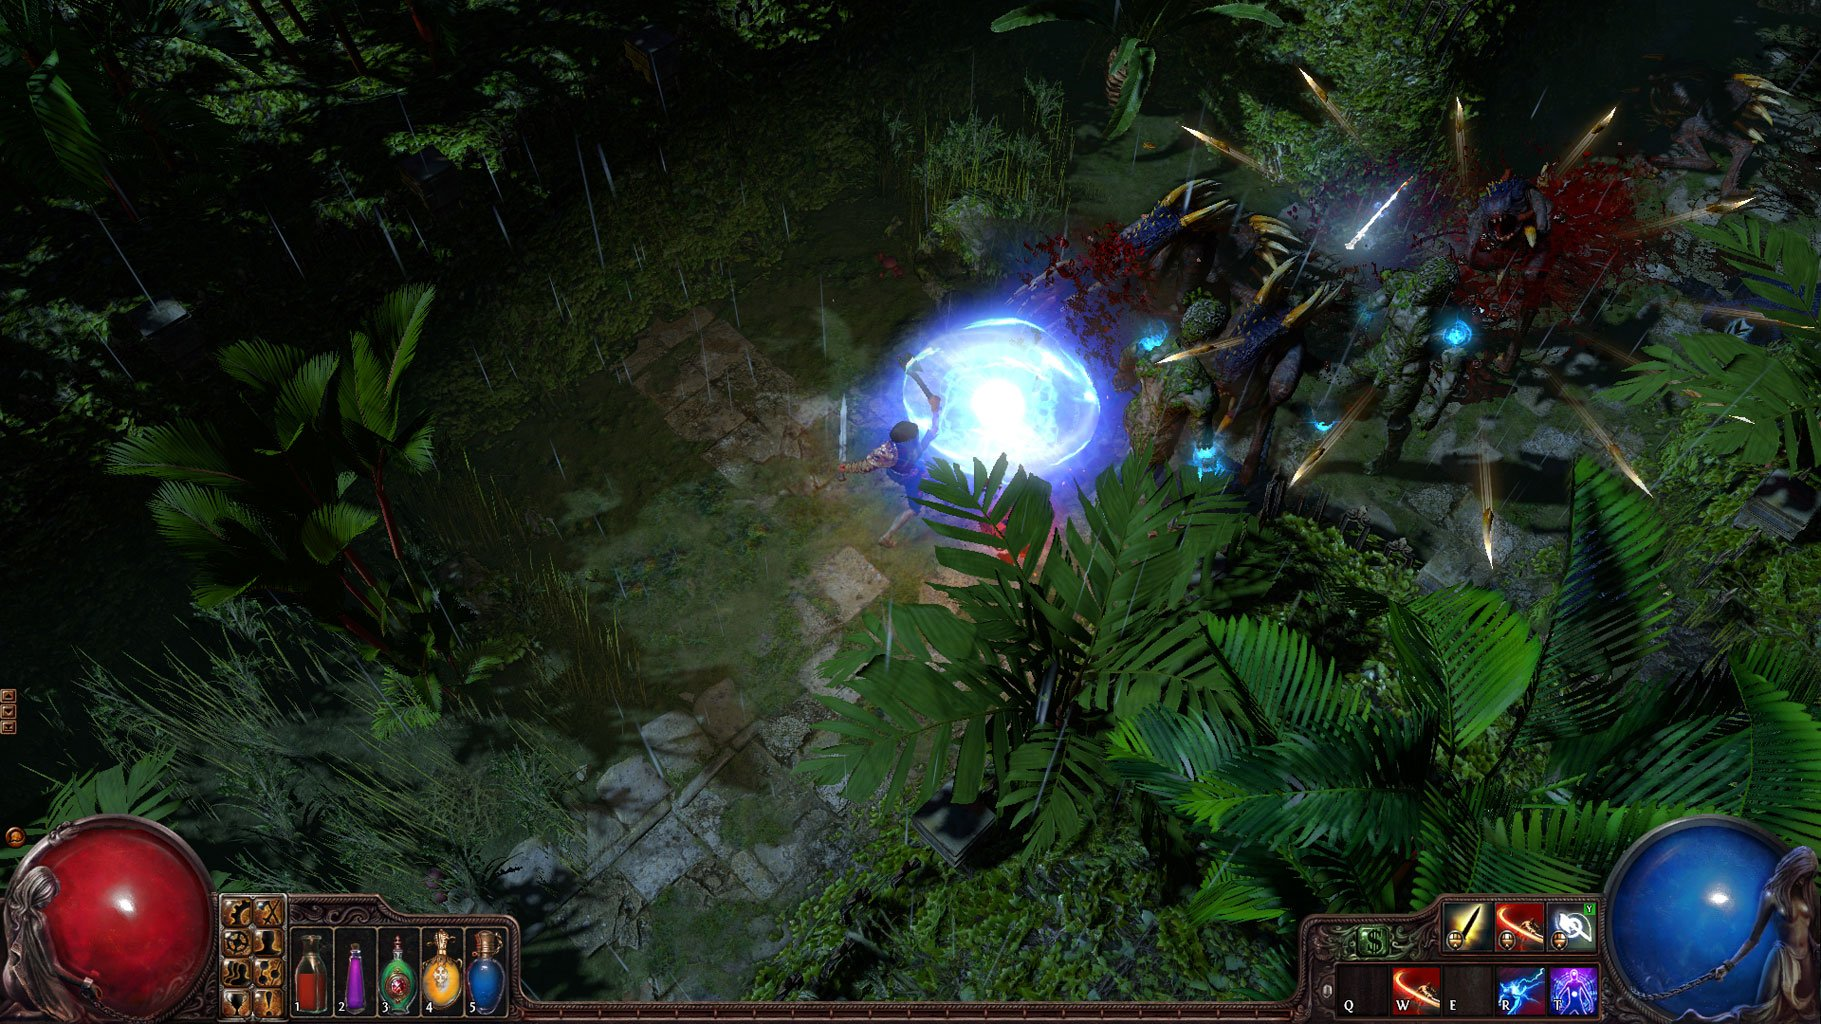 path-of-exile-gameplay-screenshots-grinding-gear-games-online-action-rpg-dark-fantasy-pc